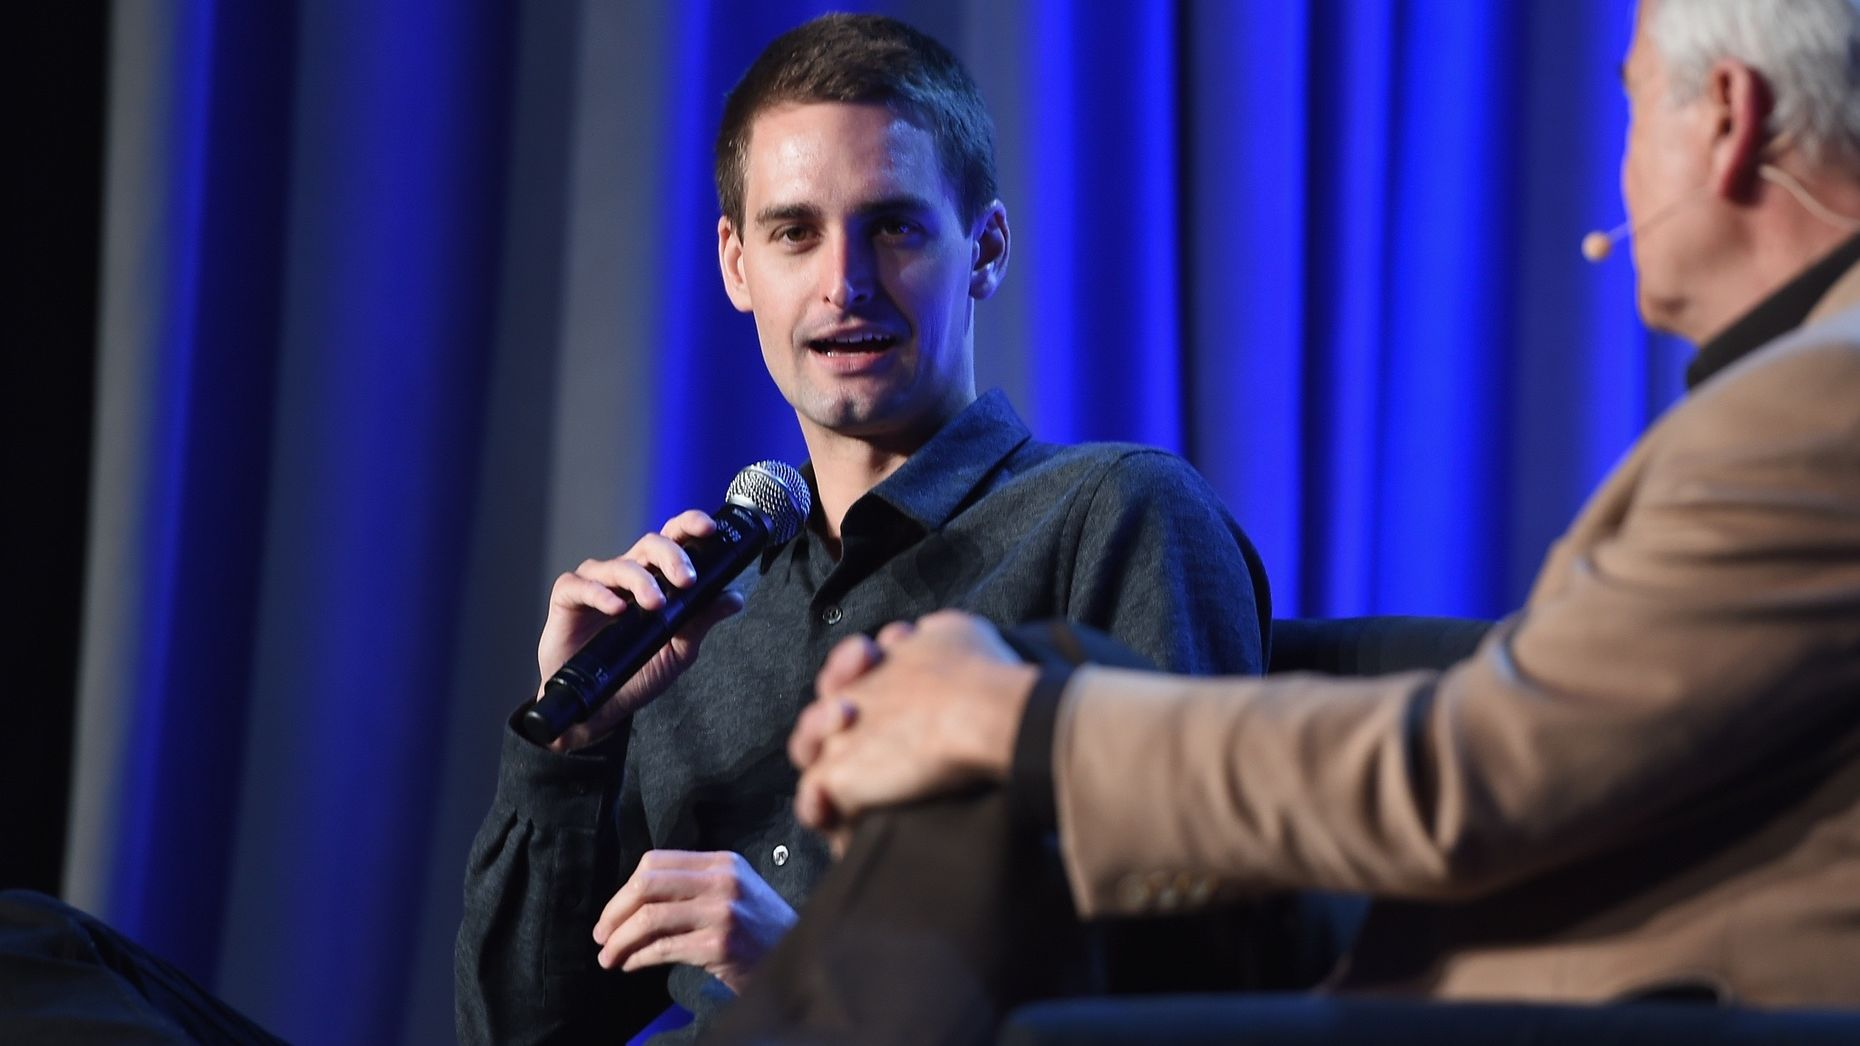 Evan Spiegel, left. Photo by Larry Busacca/Getty Image.